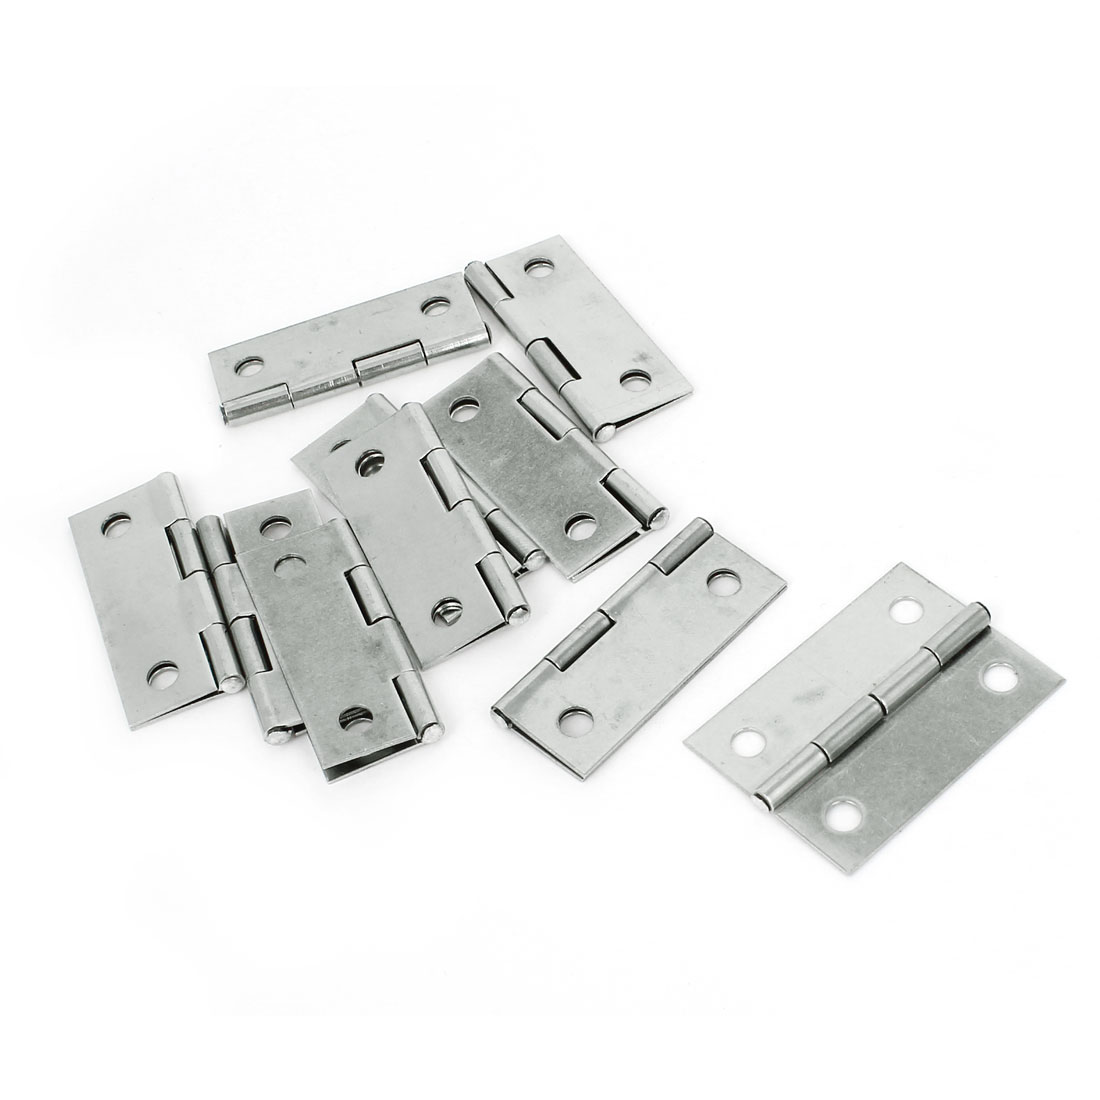 "10 Pcs 1.4"" Long Silver Tone Metal Rotatable Cupboard Door Lock Security Safety Hinge(China (Mainland))"